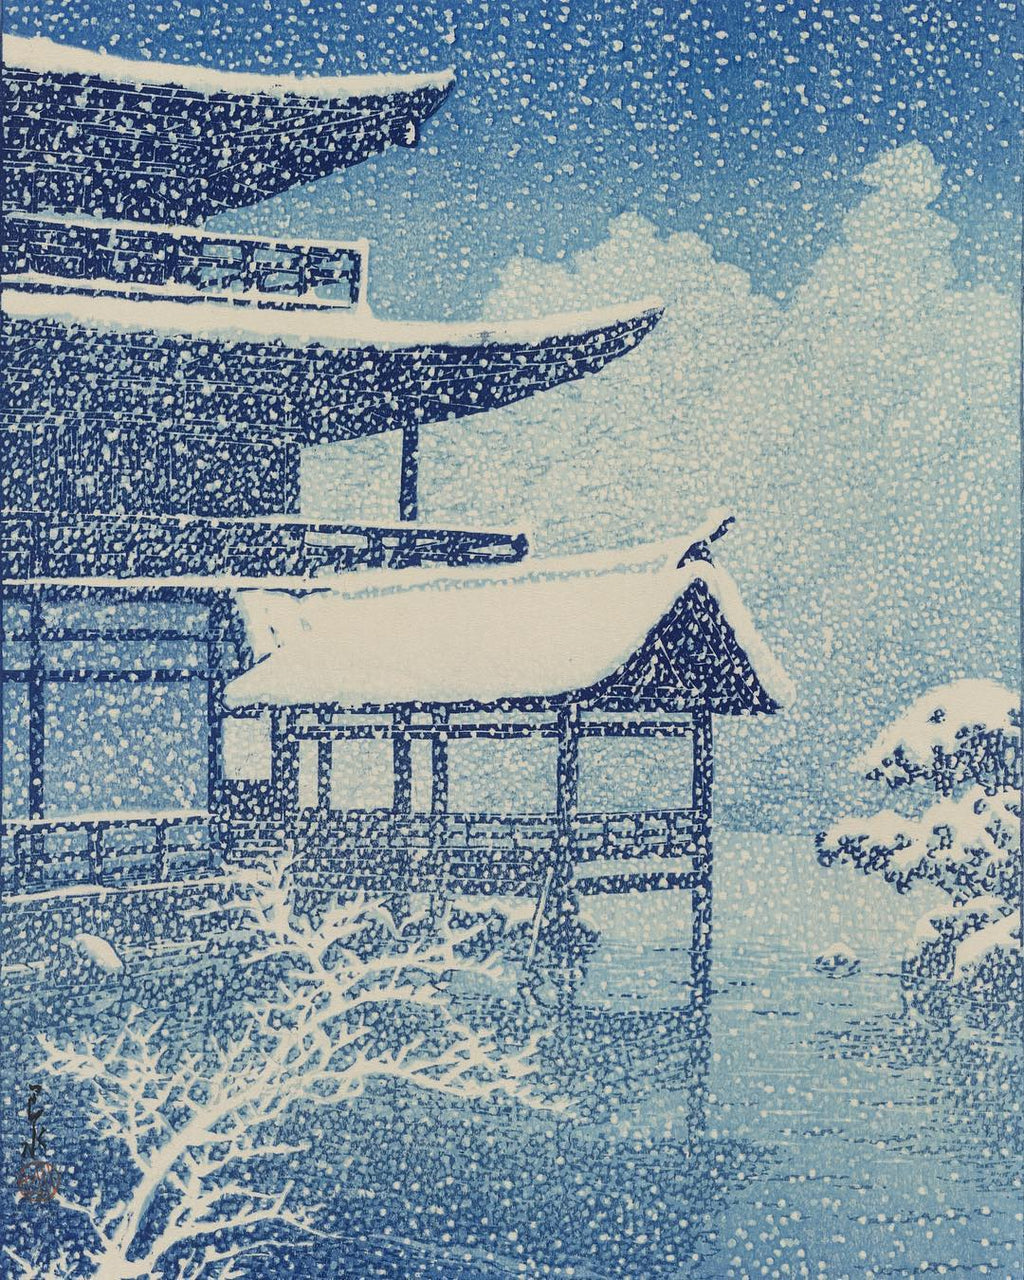 Snow near Kyoto, Japan by Kawase Hasui, 1922